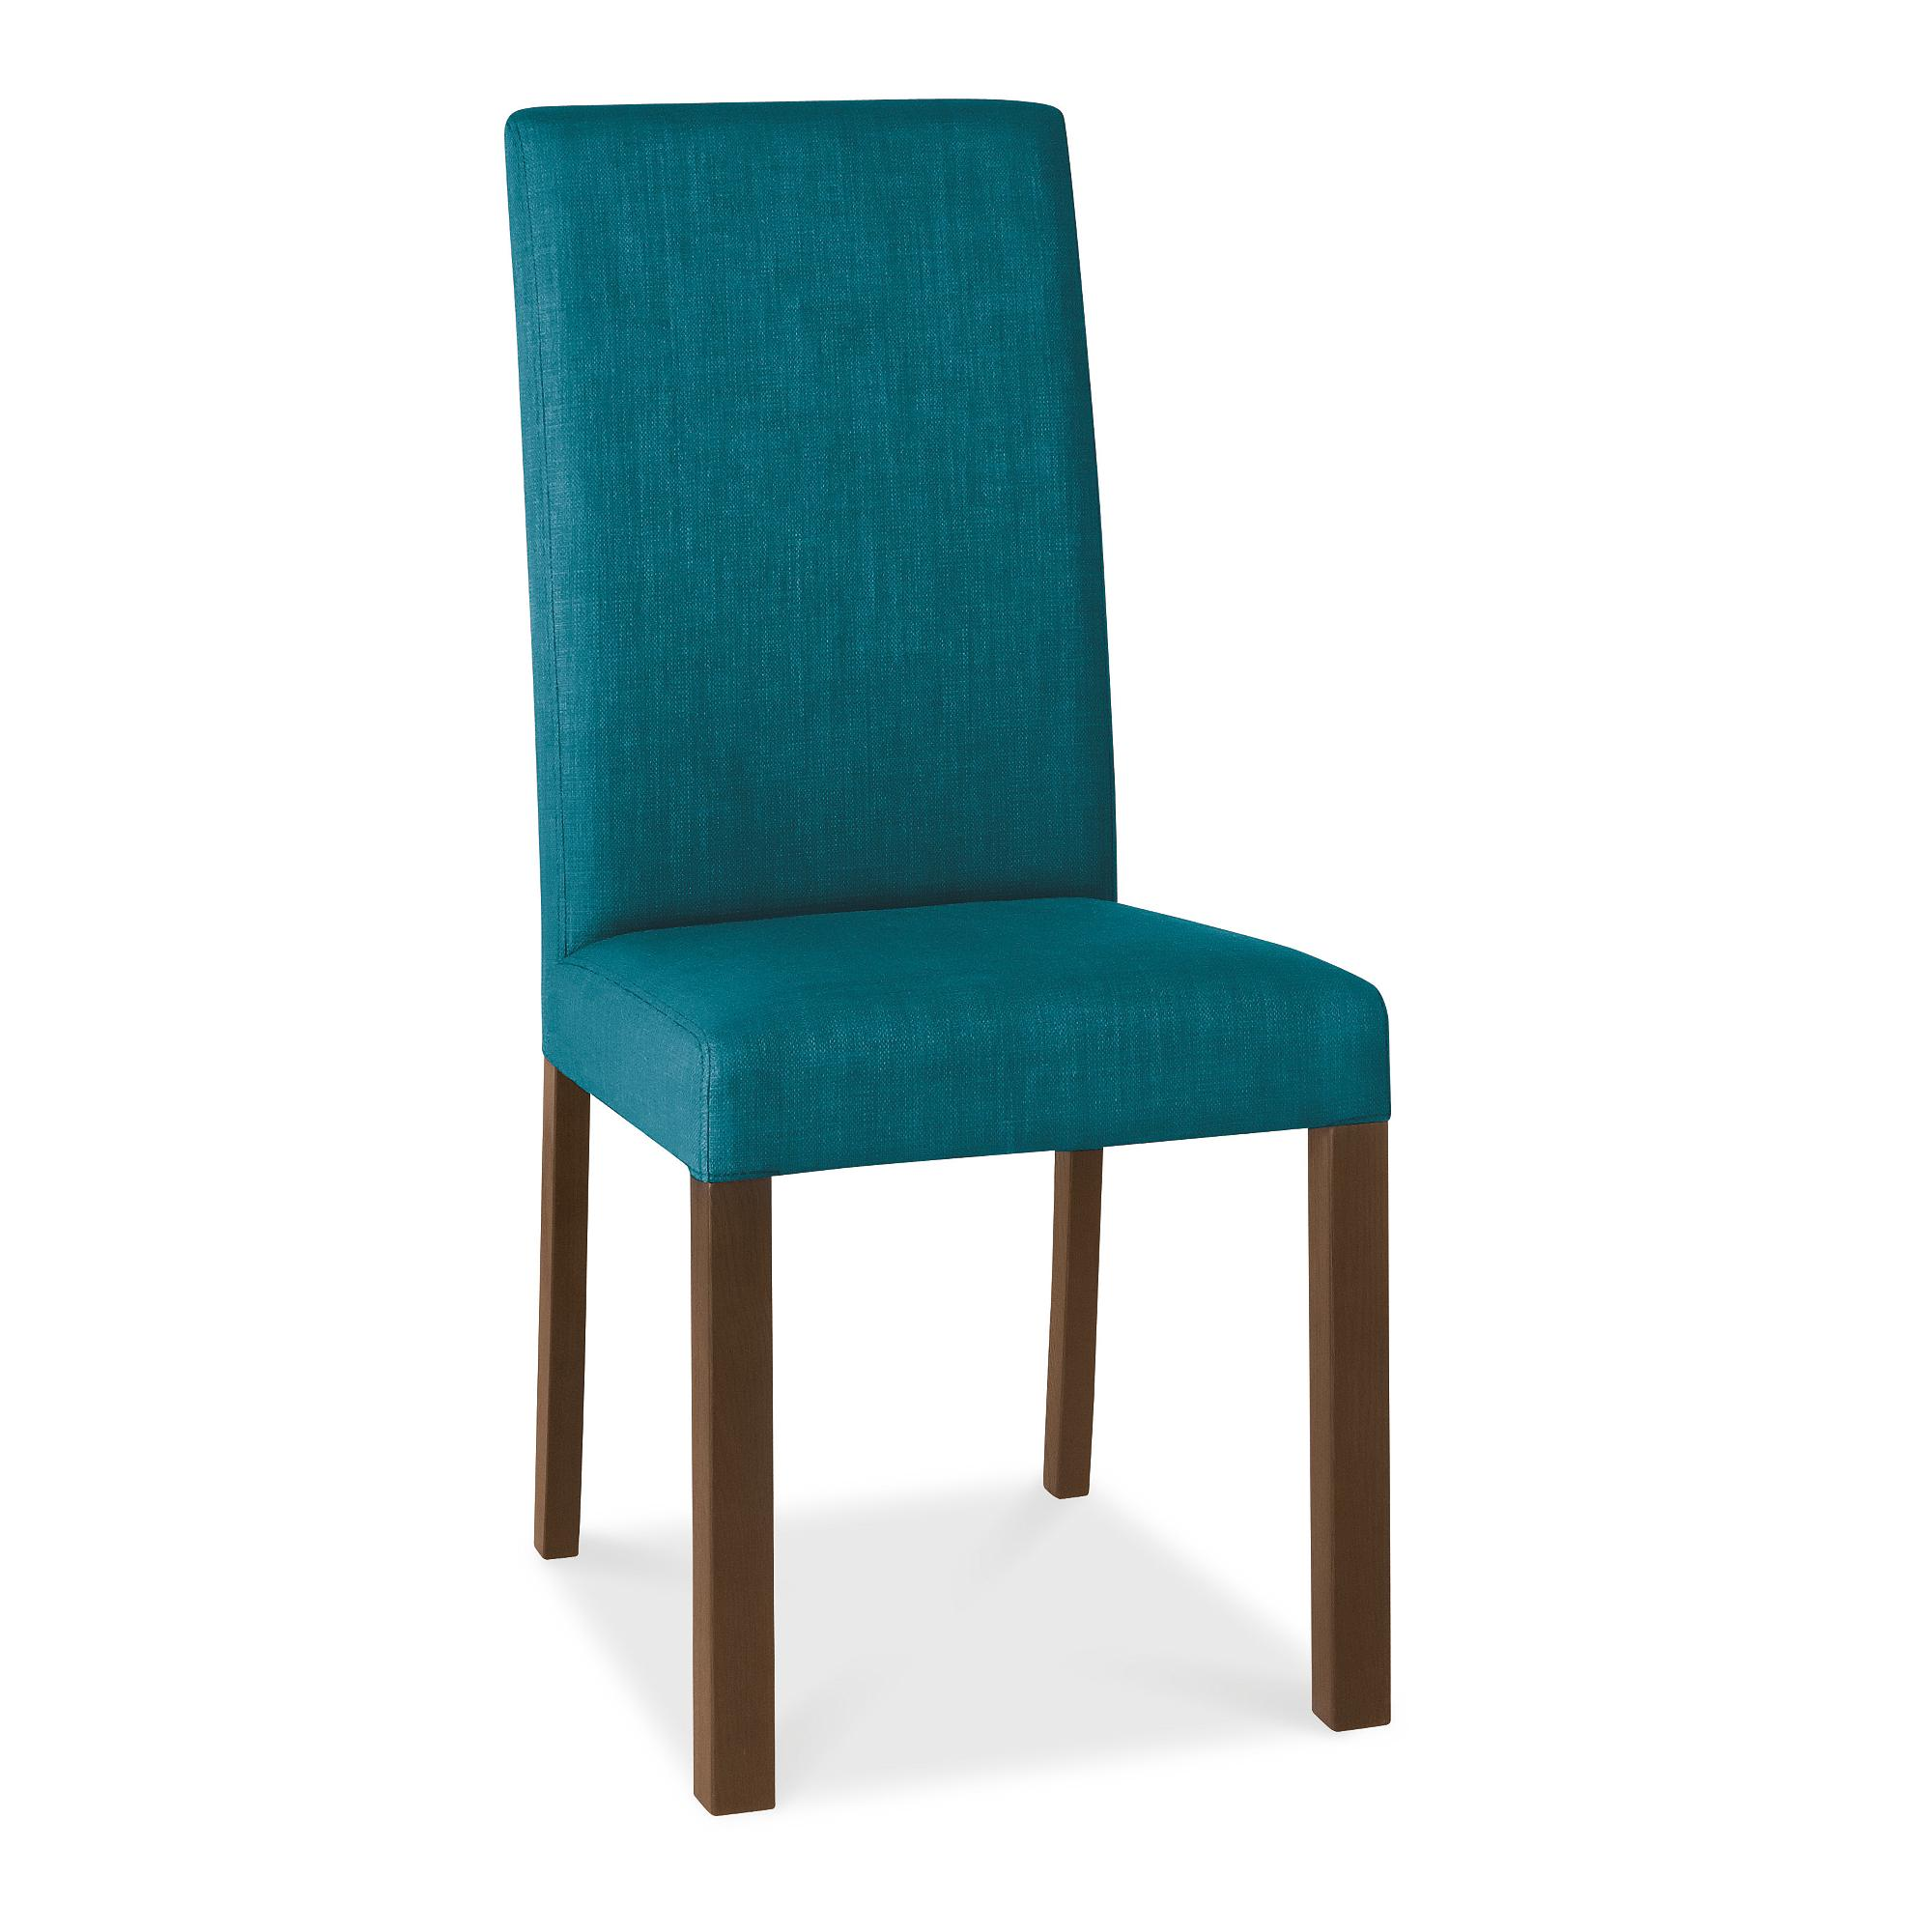 Dining room chairs blue chair design blue dining room for Wooden dining room chairs